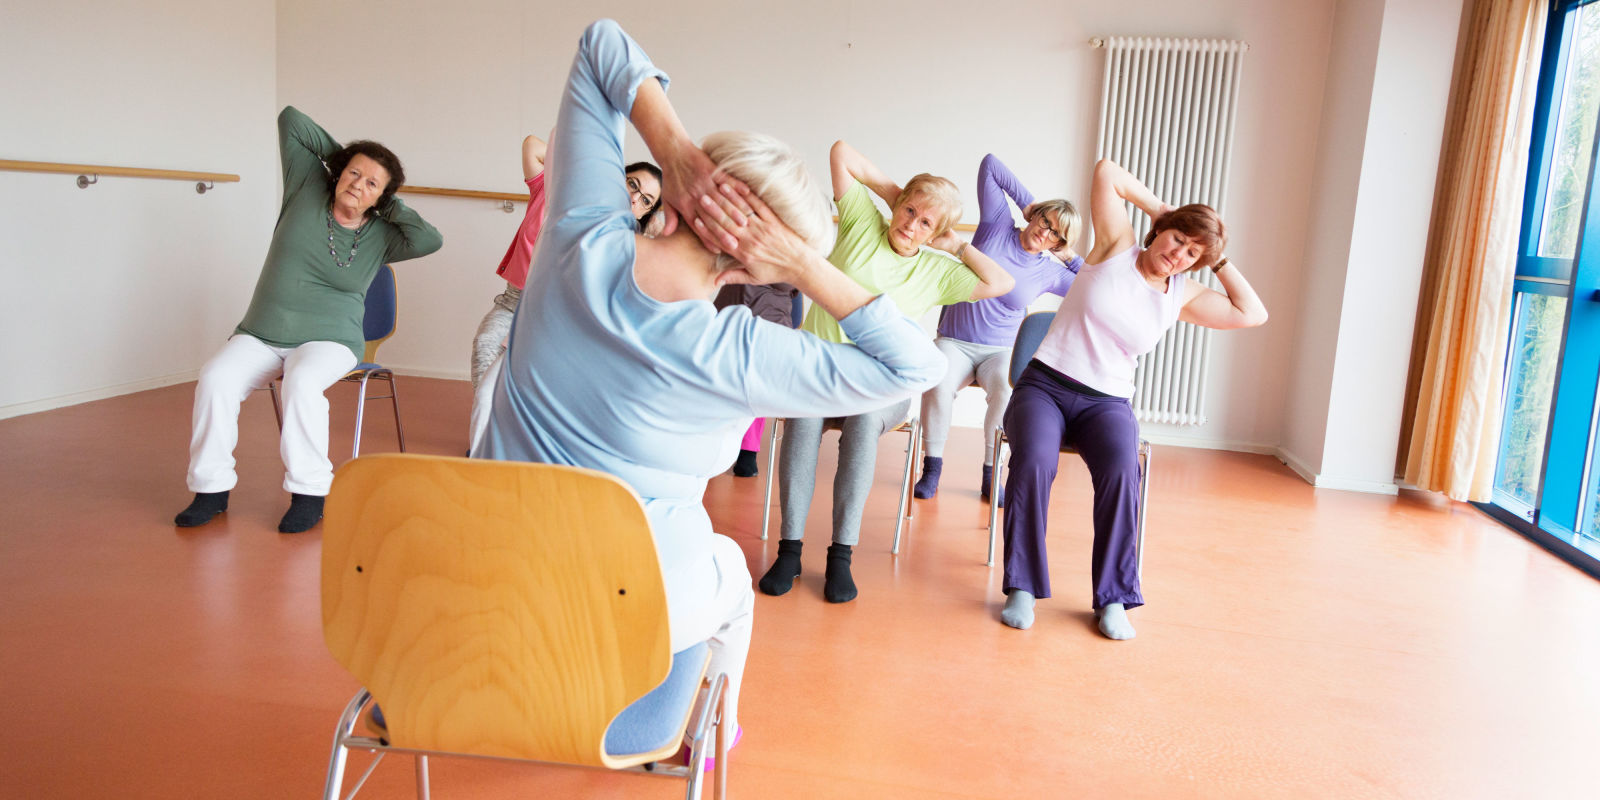 Chair yoga elderly - Chair Yoga Elderly 23